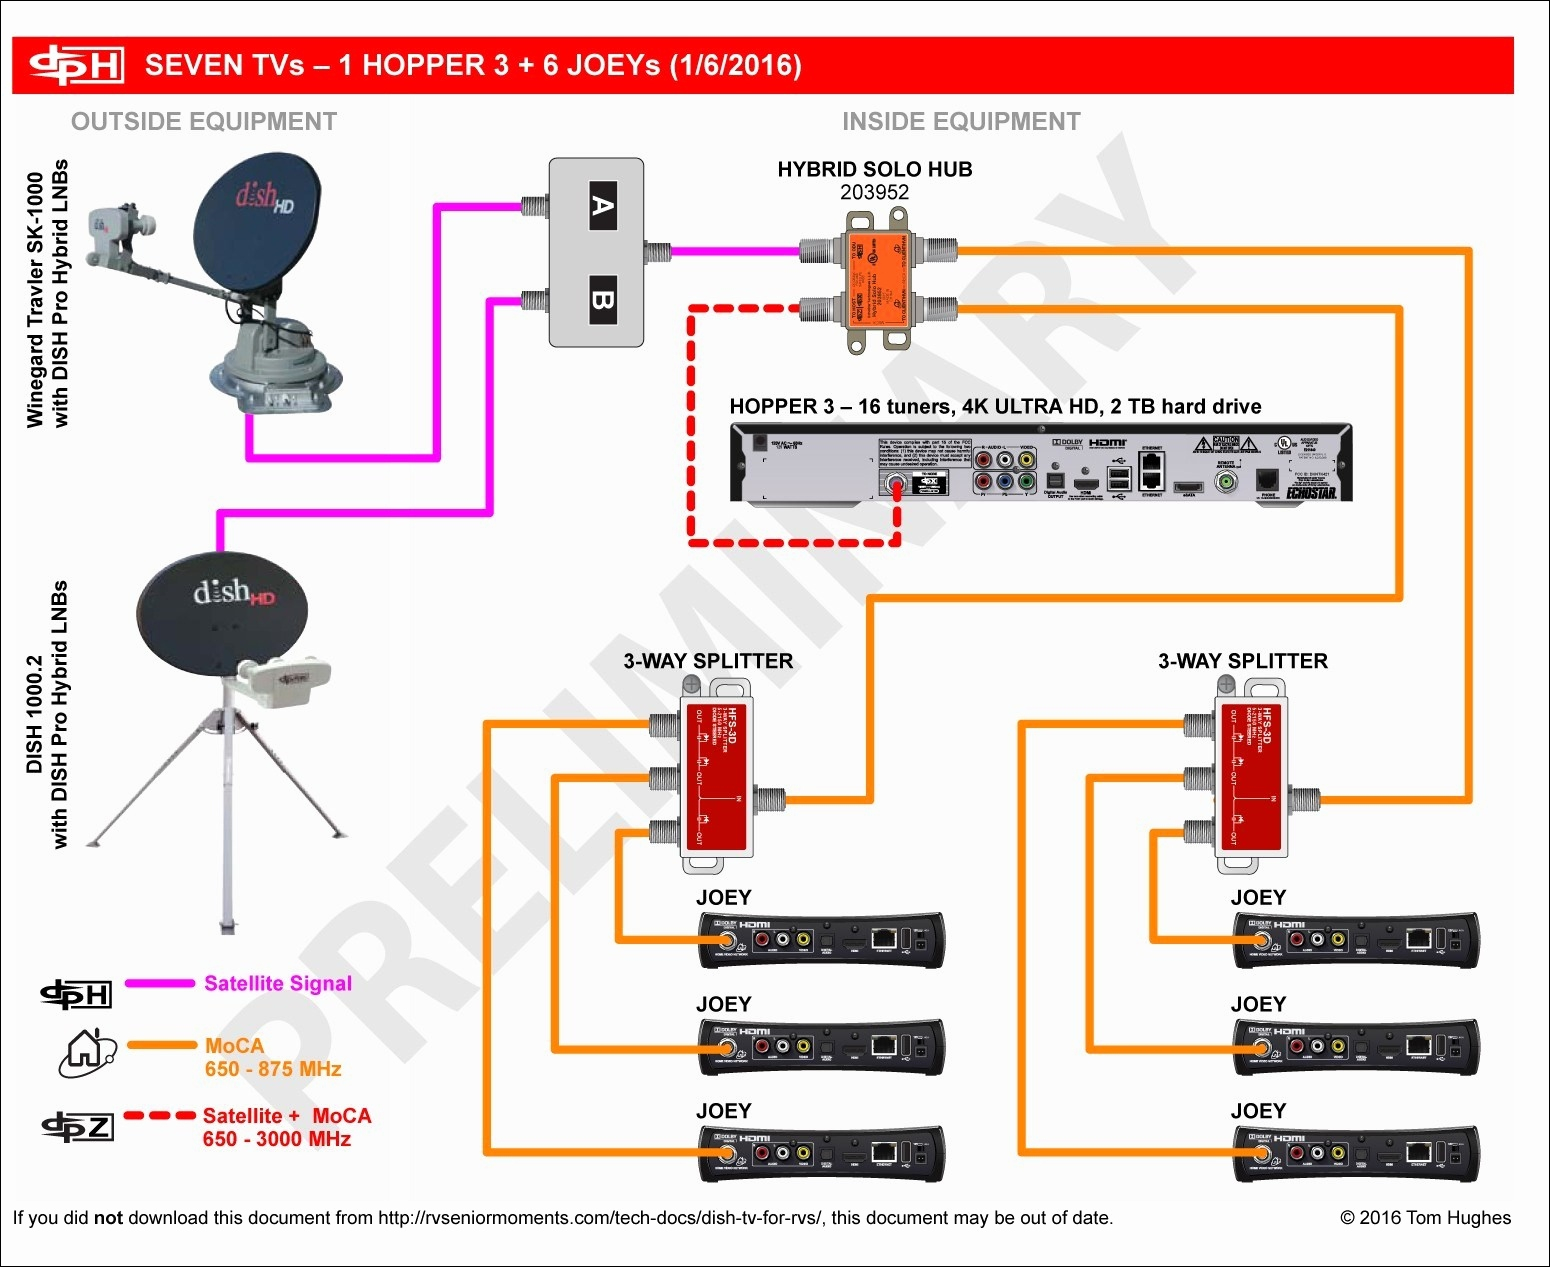 Travel Trailer Rv Cable And Satellite Wiring Diagram from wholefoodsonabudget.com